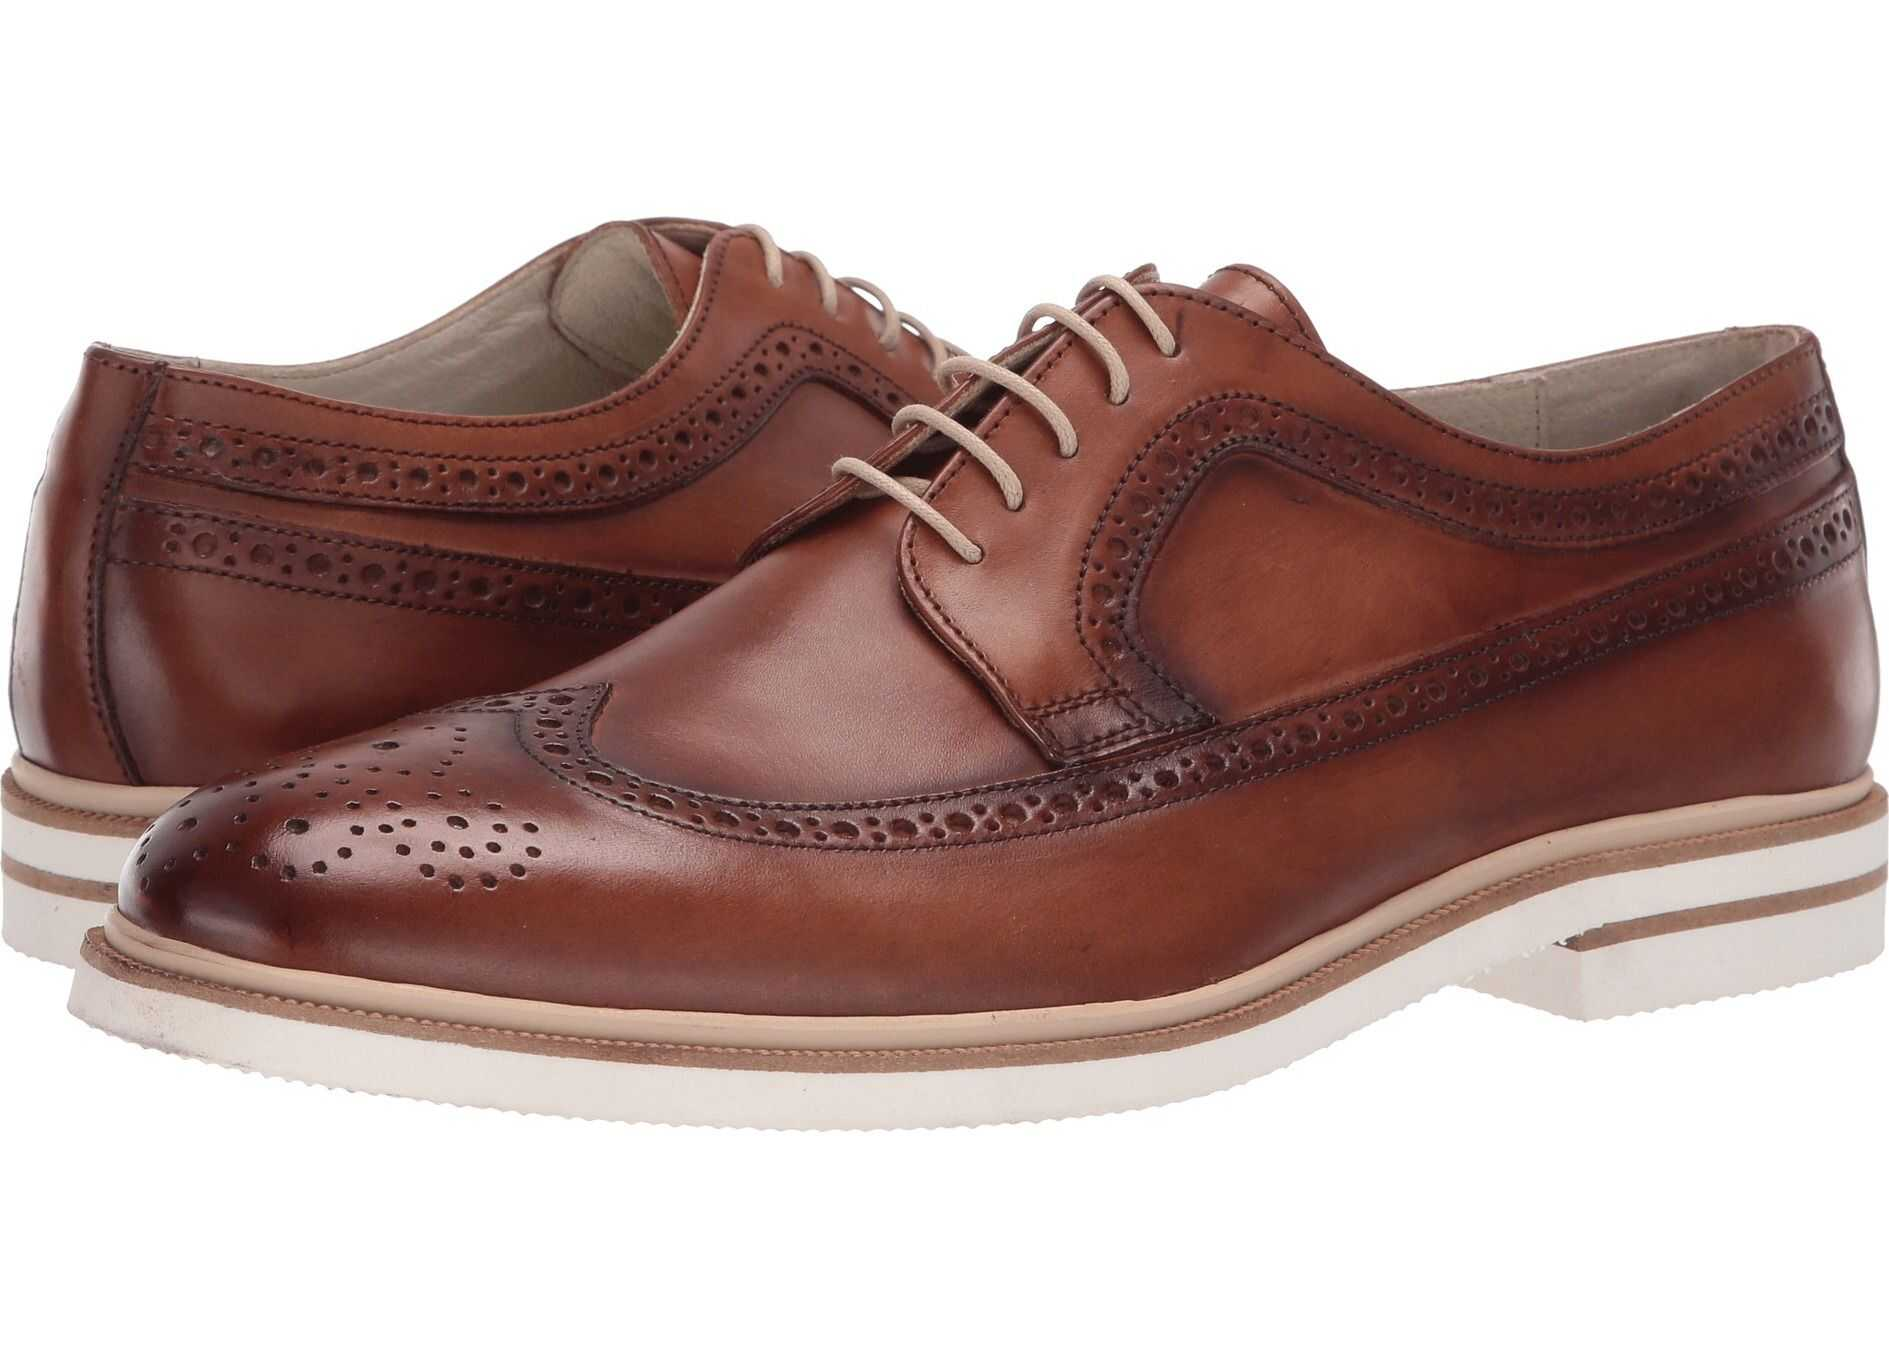 Kenneth Cole New York Vertical Lace-Up Cognac